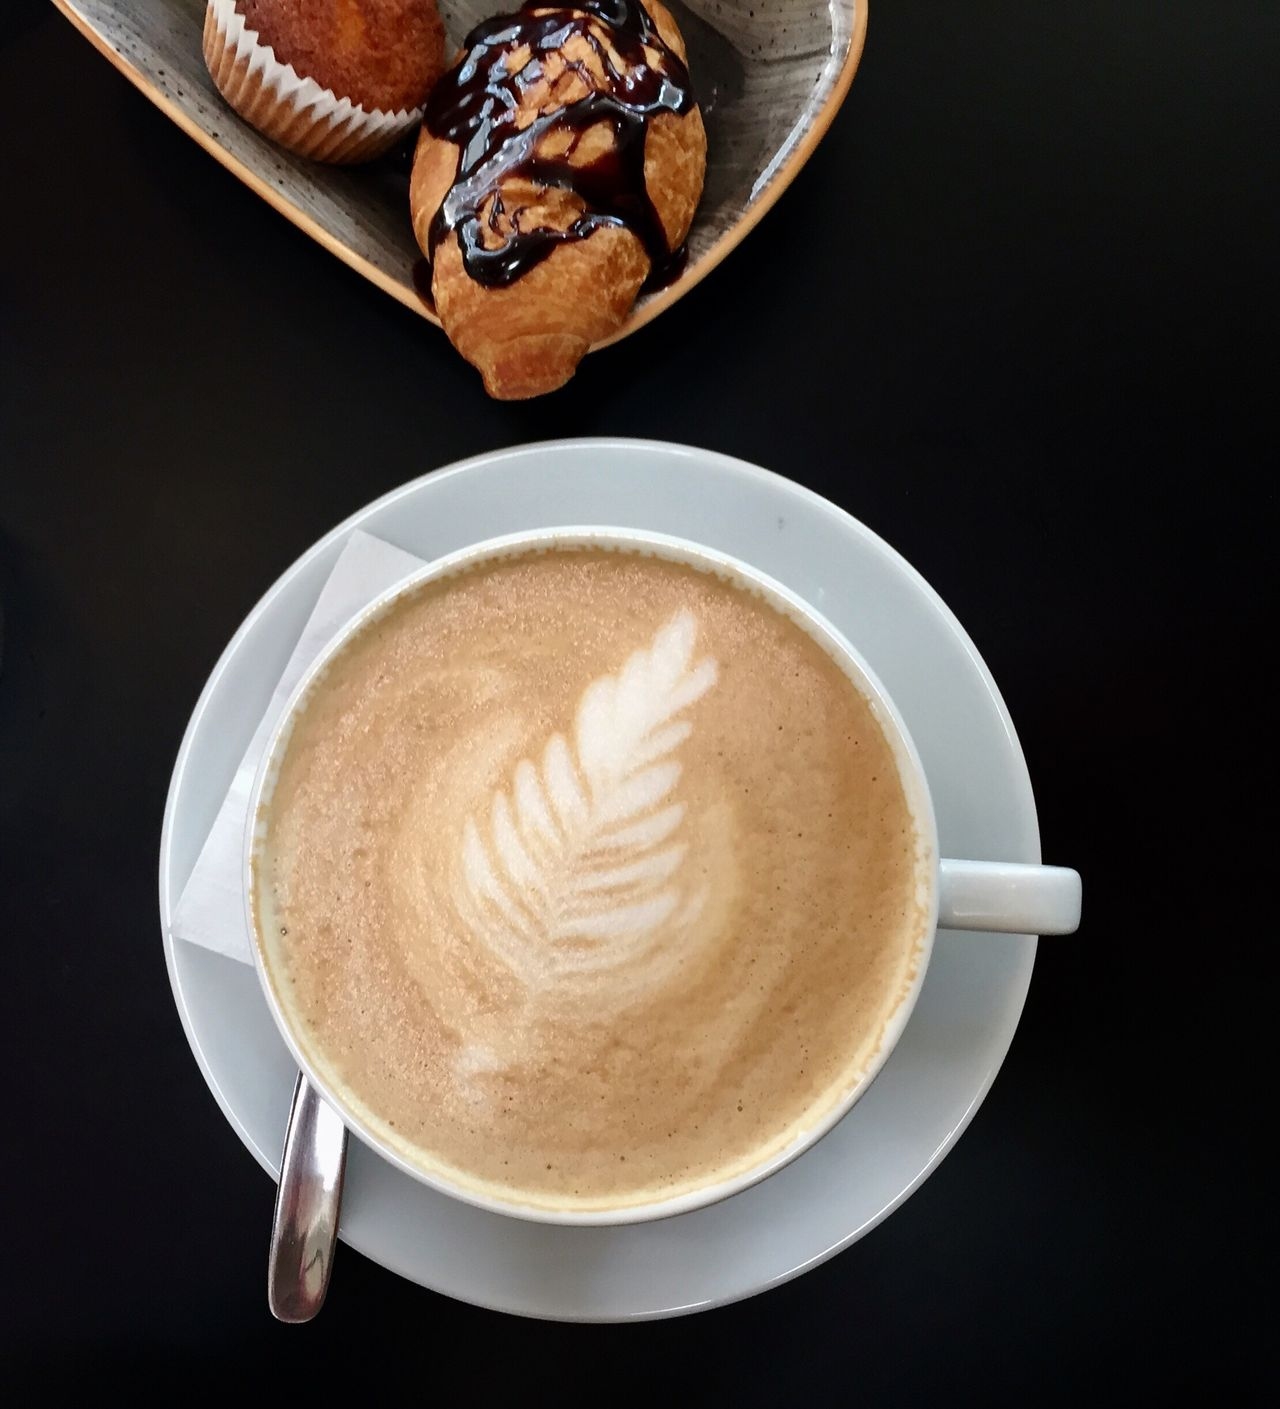 Coffee - Drink Food And Drink Table High Angle View Cappuccino Sweet Food Black Background Day Coffee Cup Freshness